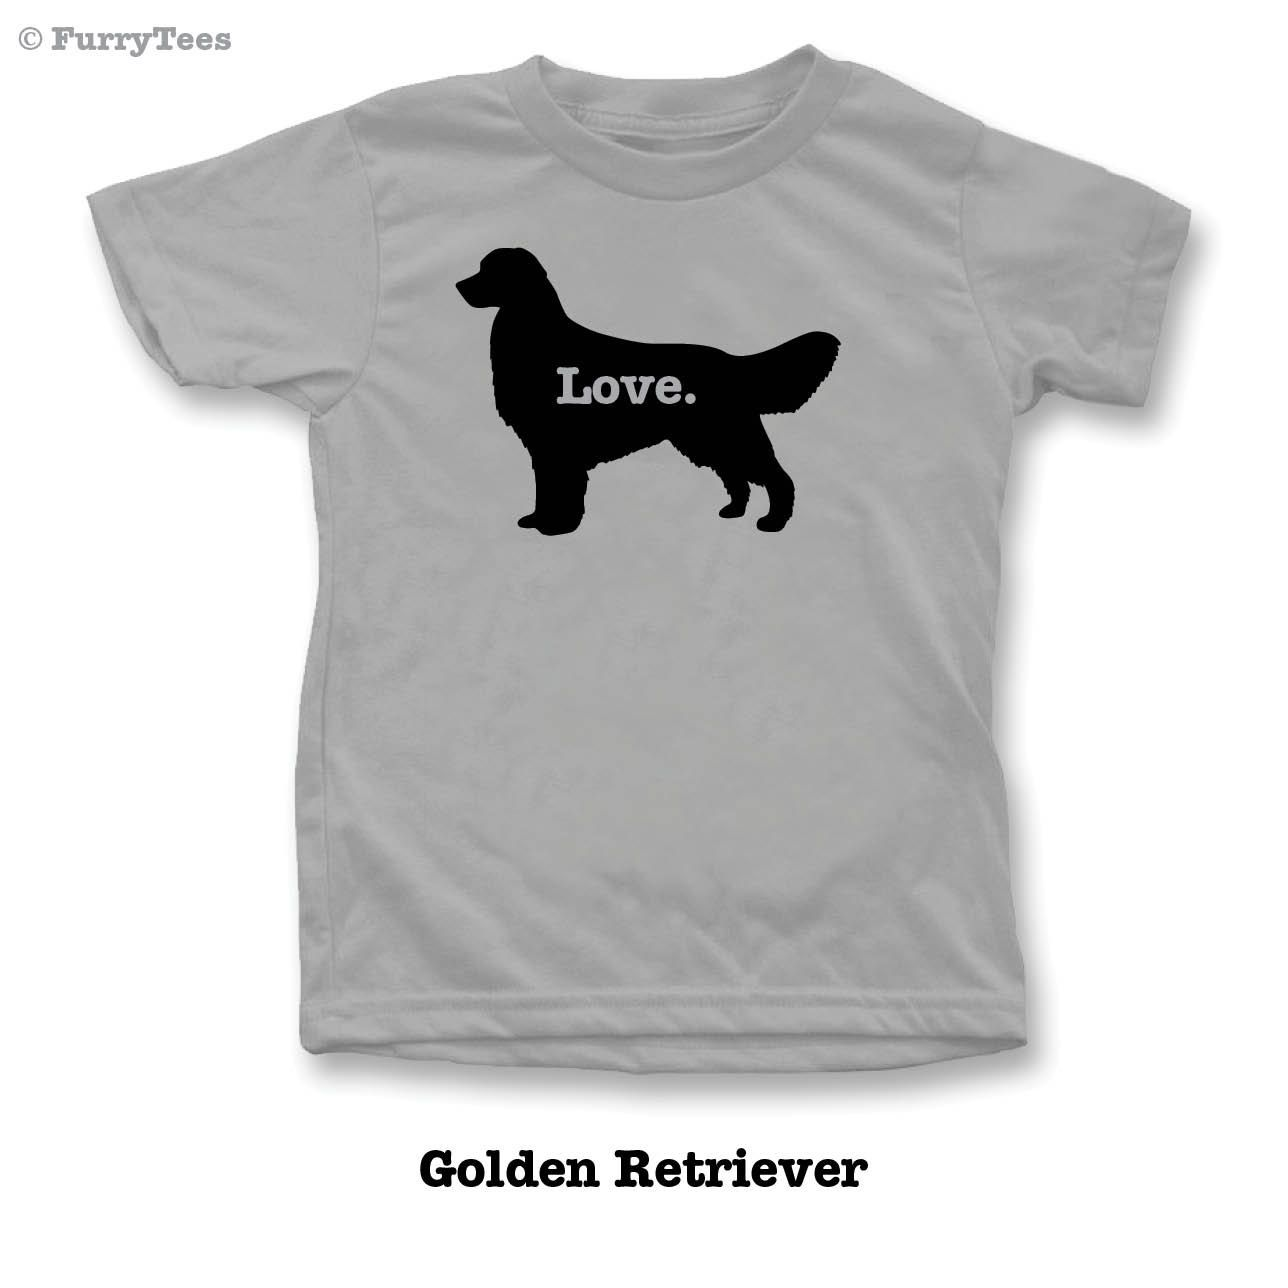 Dog lover tshirt, Golden Retriever New puppy, Dog Shirt, Dog Breed Gift, Dog Art, Pet Lover, Dog Mom by furrytees on Etsy